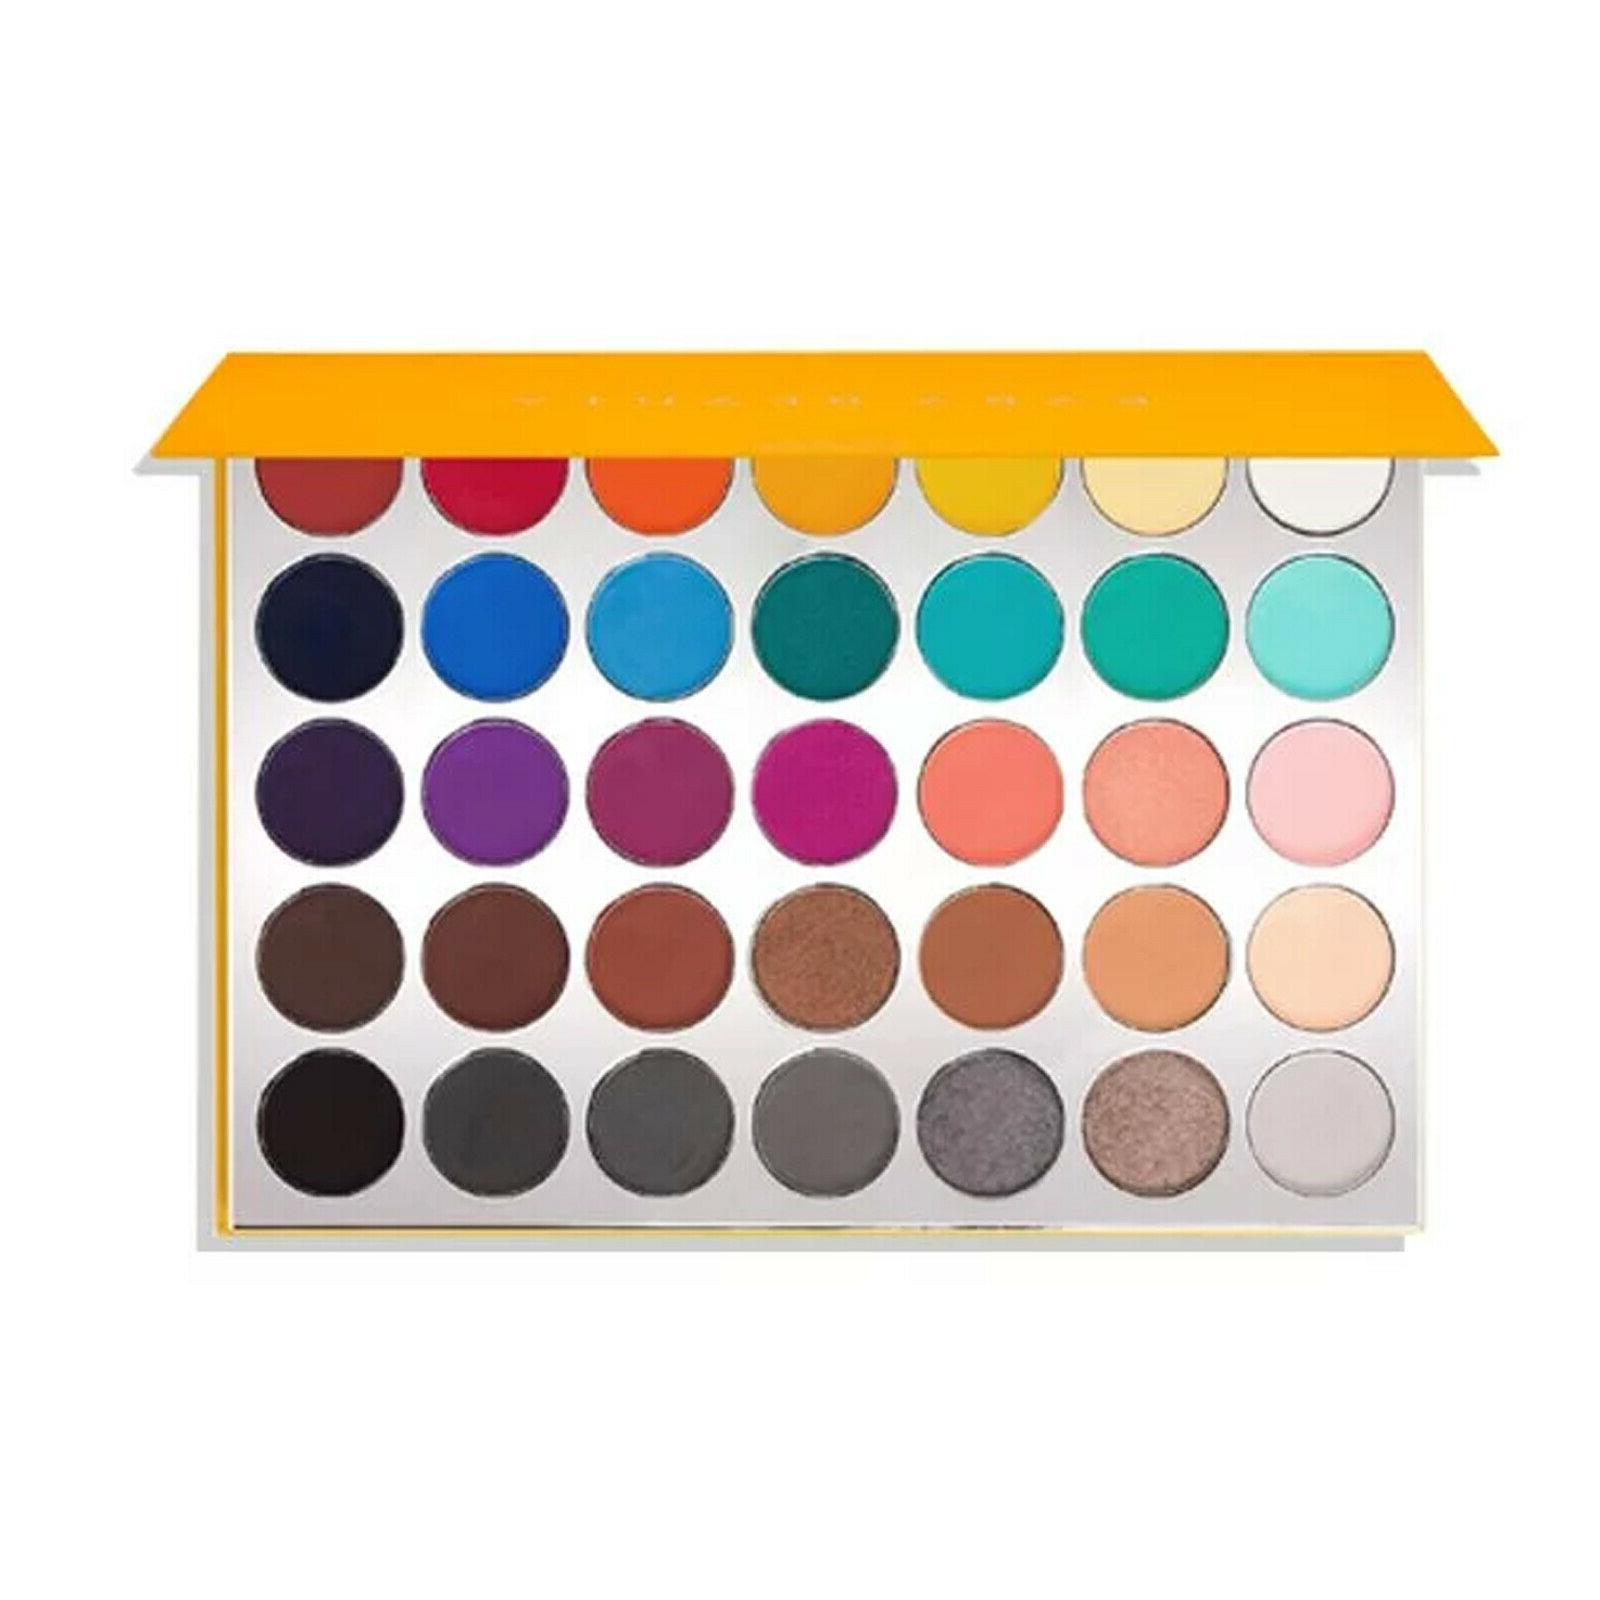 eyeshadow palette dusk to dawn 35 colors